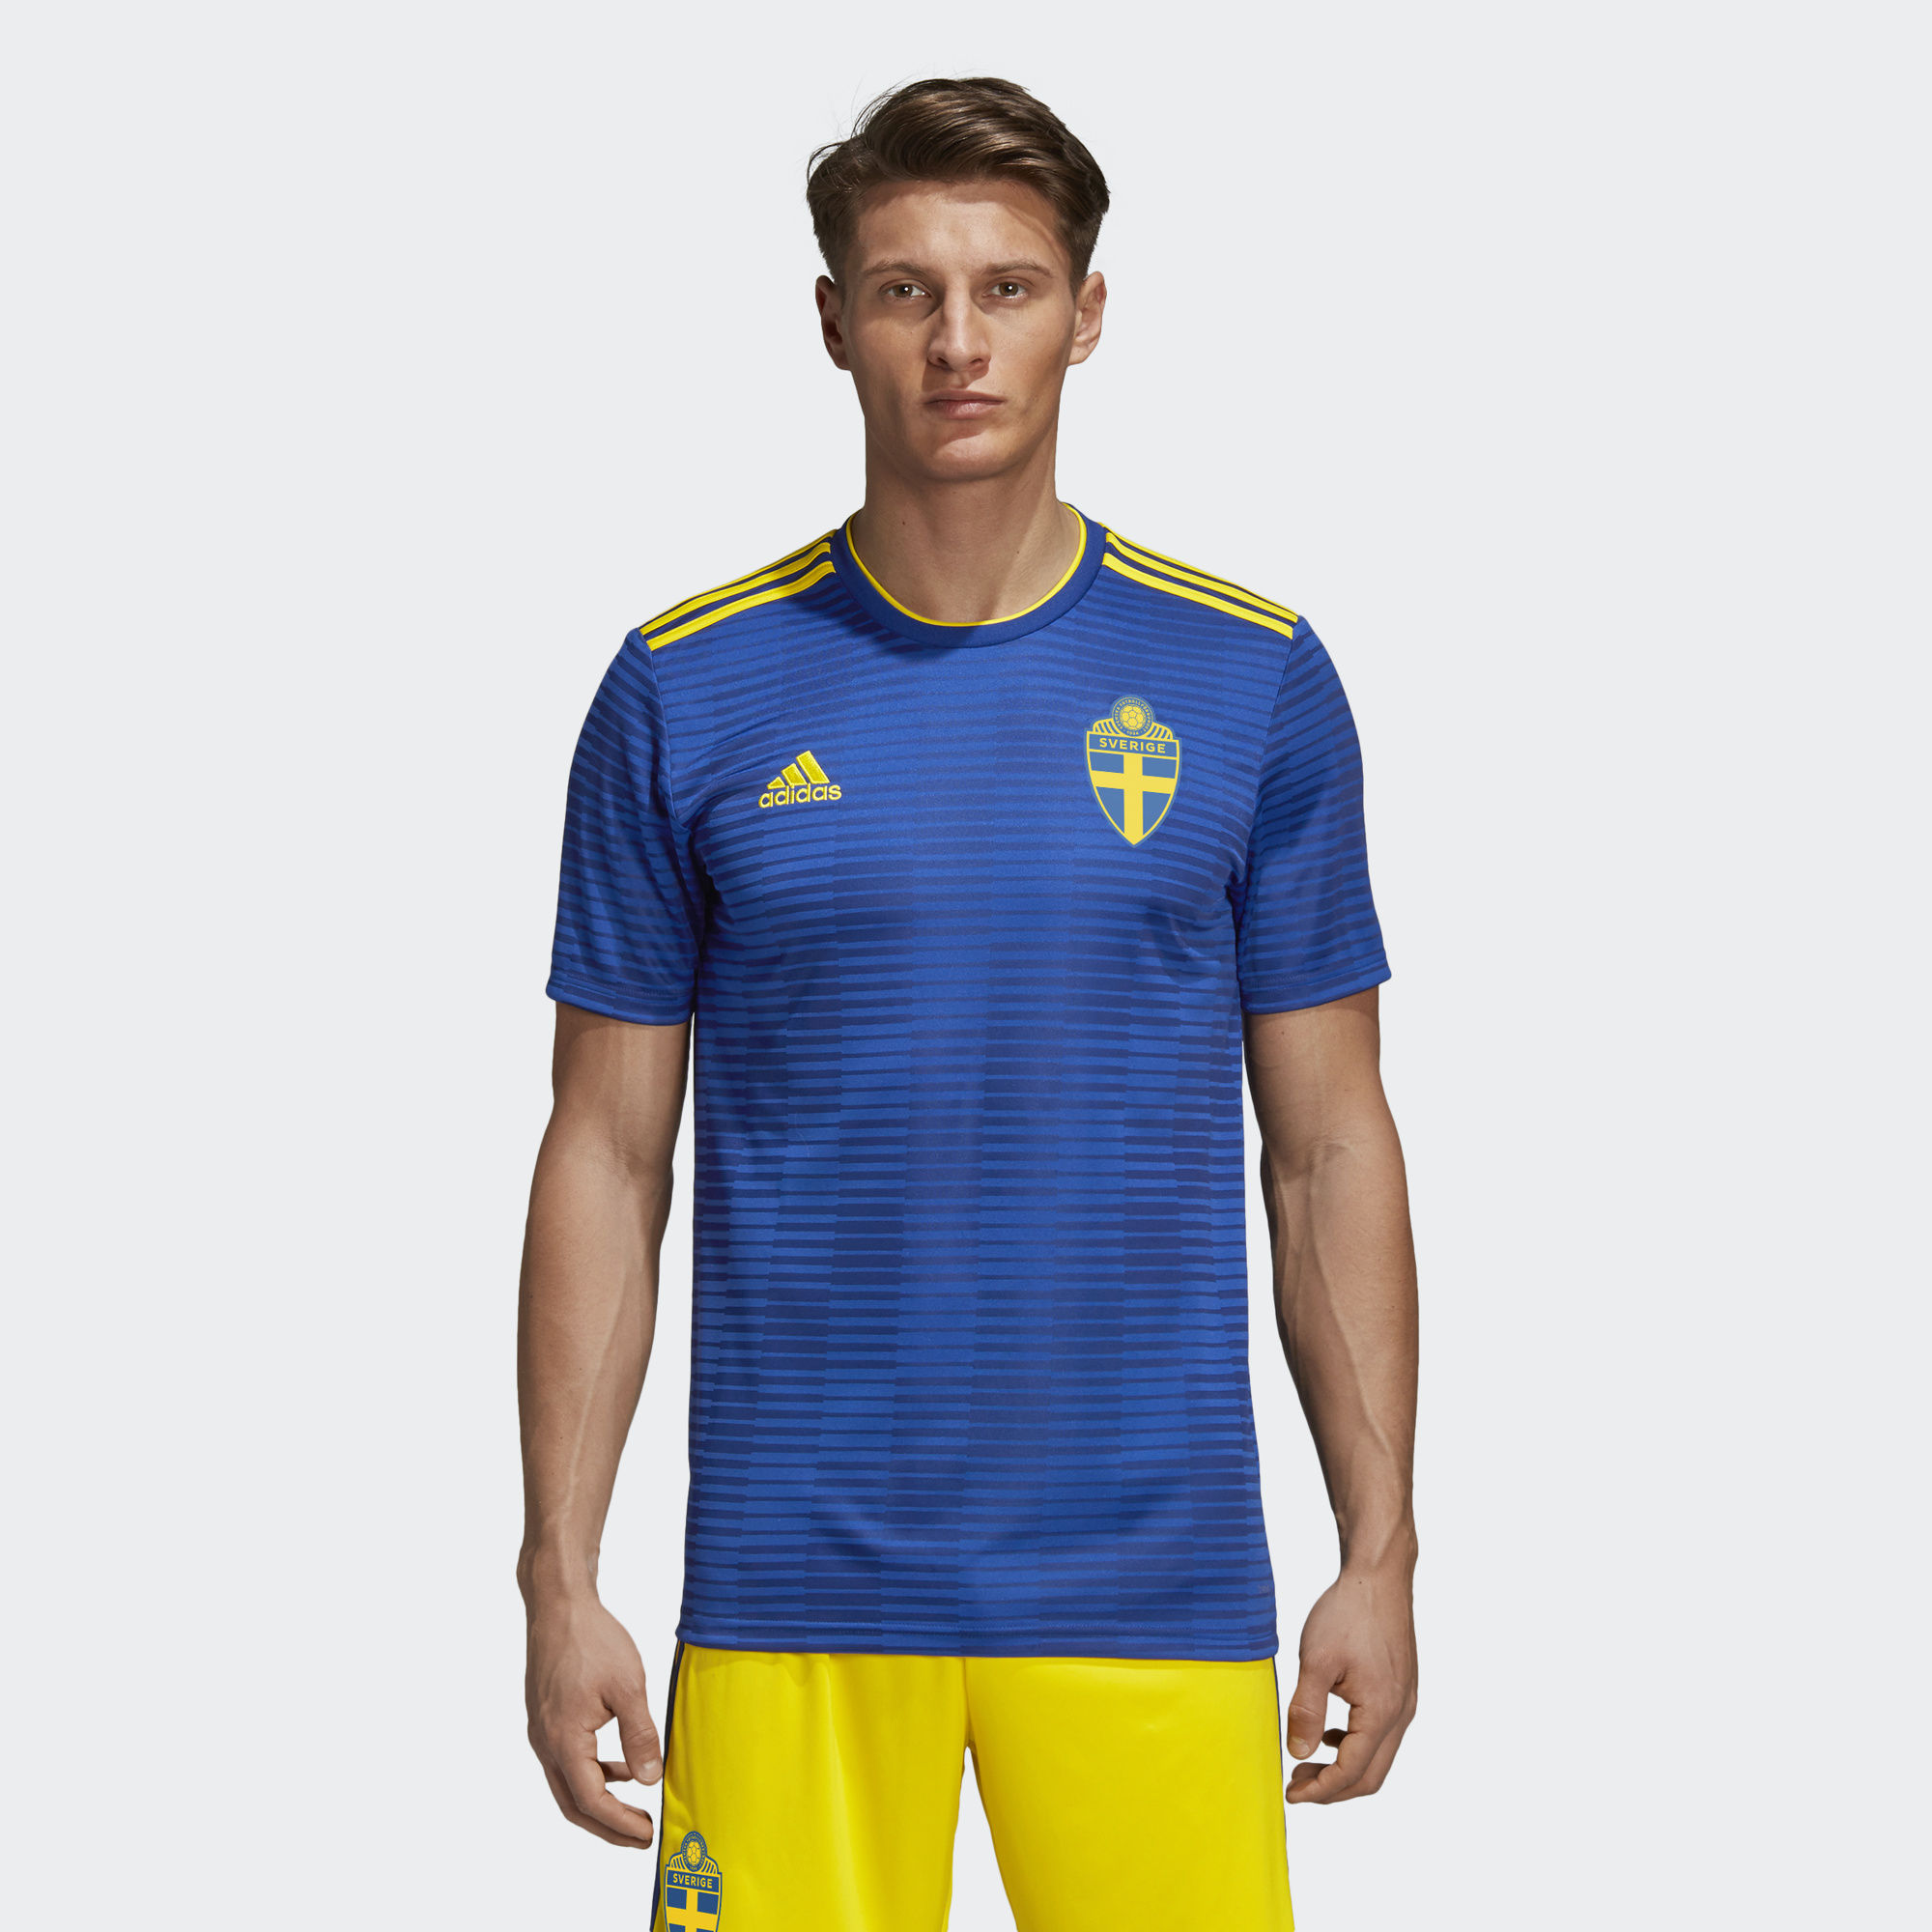 8a3c352d252 ... 2018 World Cup Adidas Home Kit · Click to enlarge image  sweden_2018_world_cup_adidas_away_kit_a.jpg ...